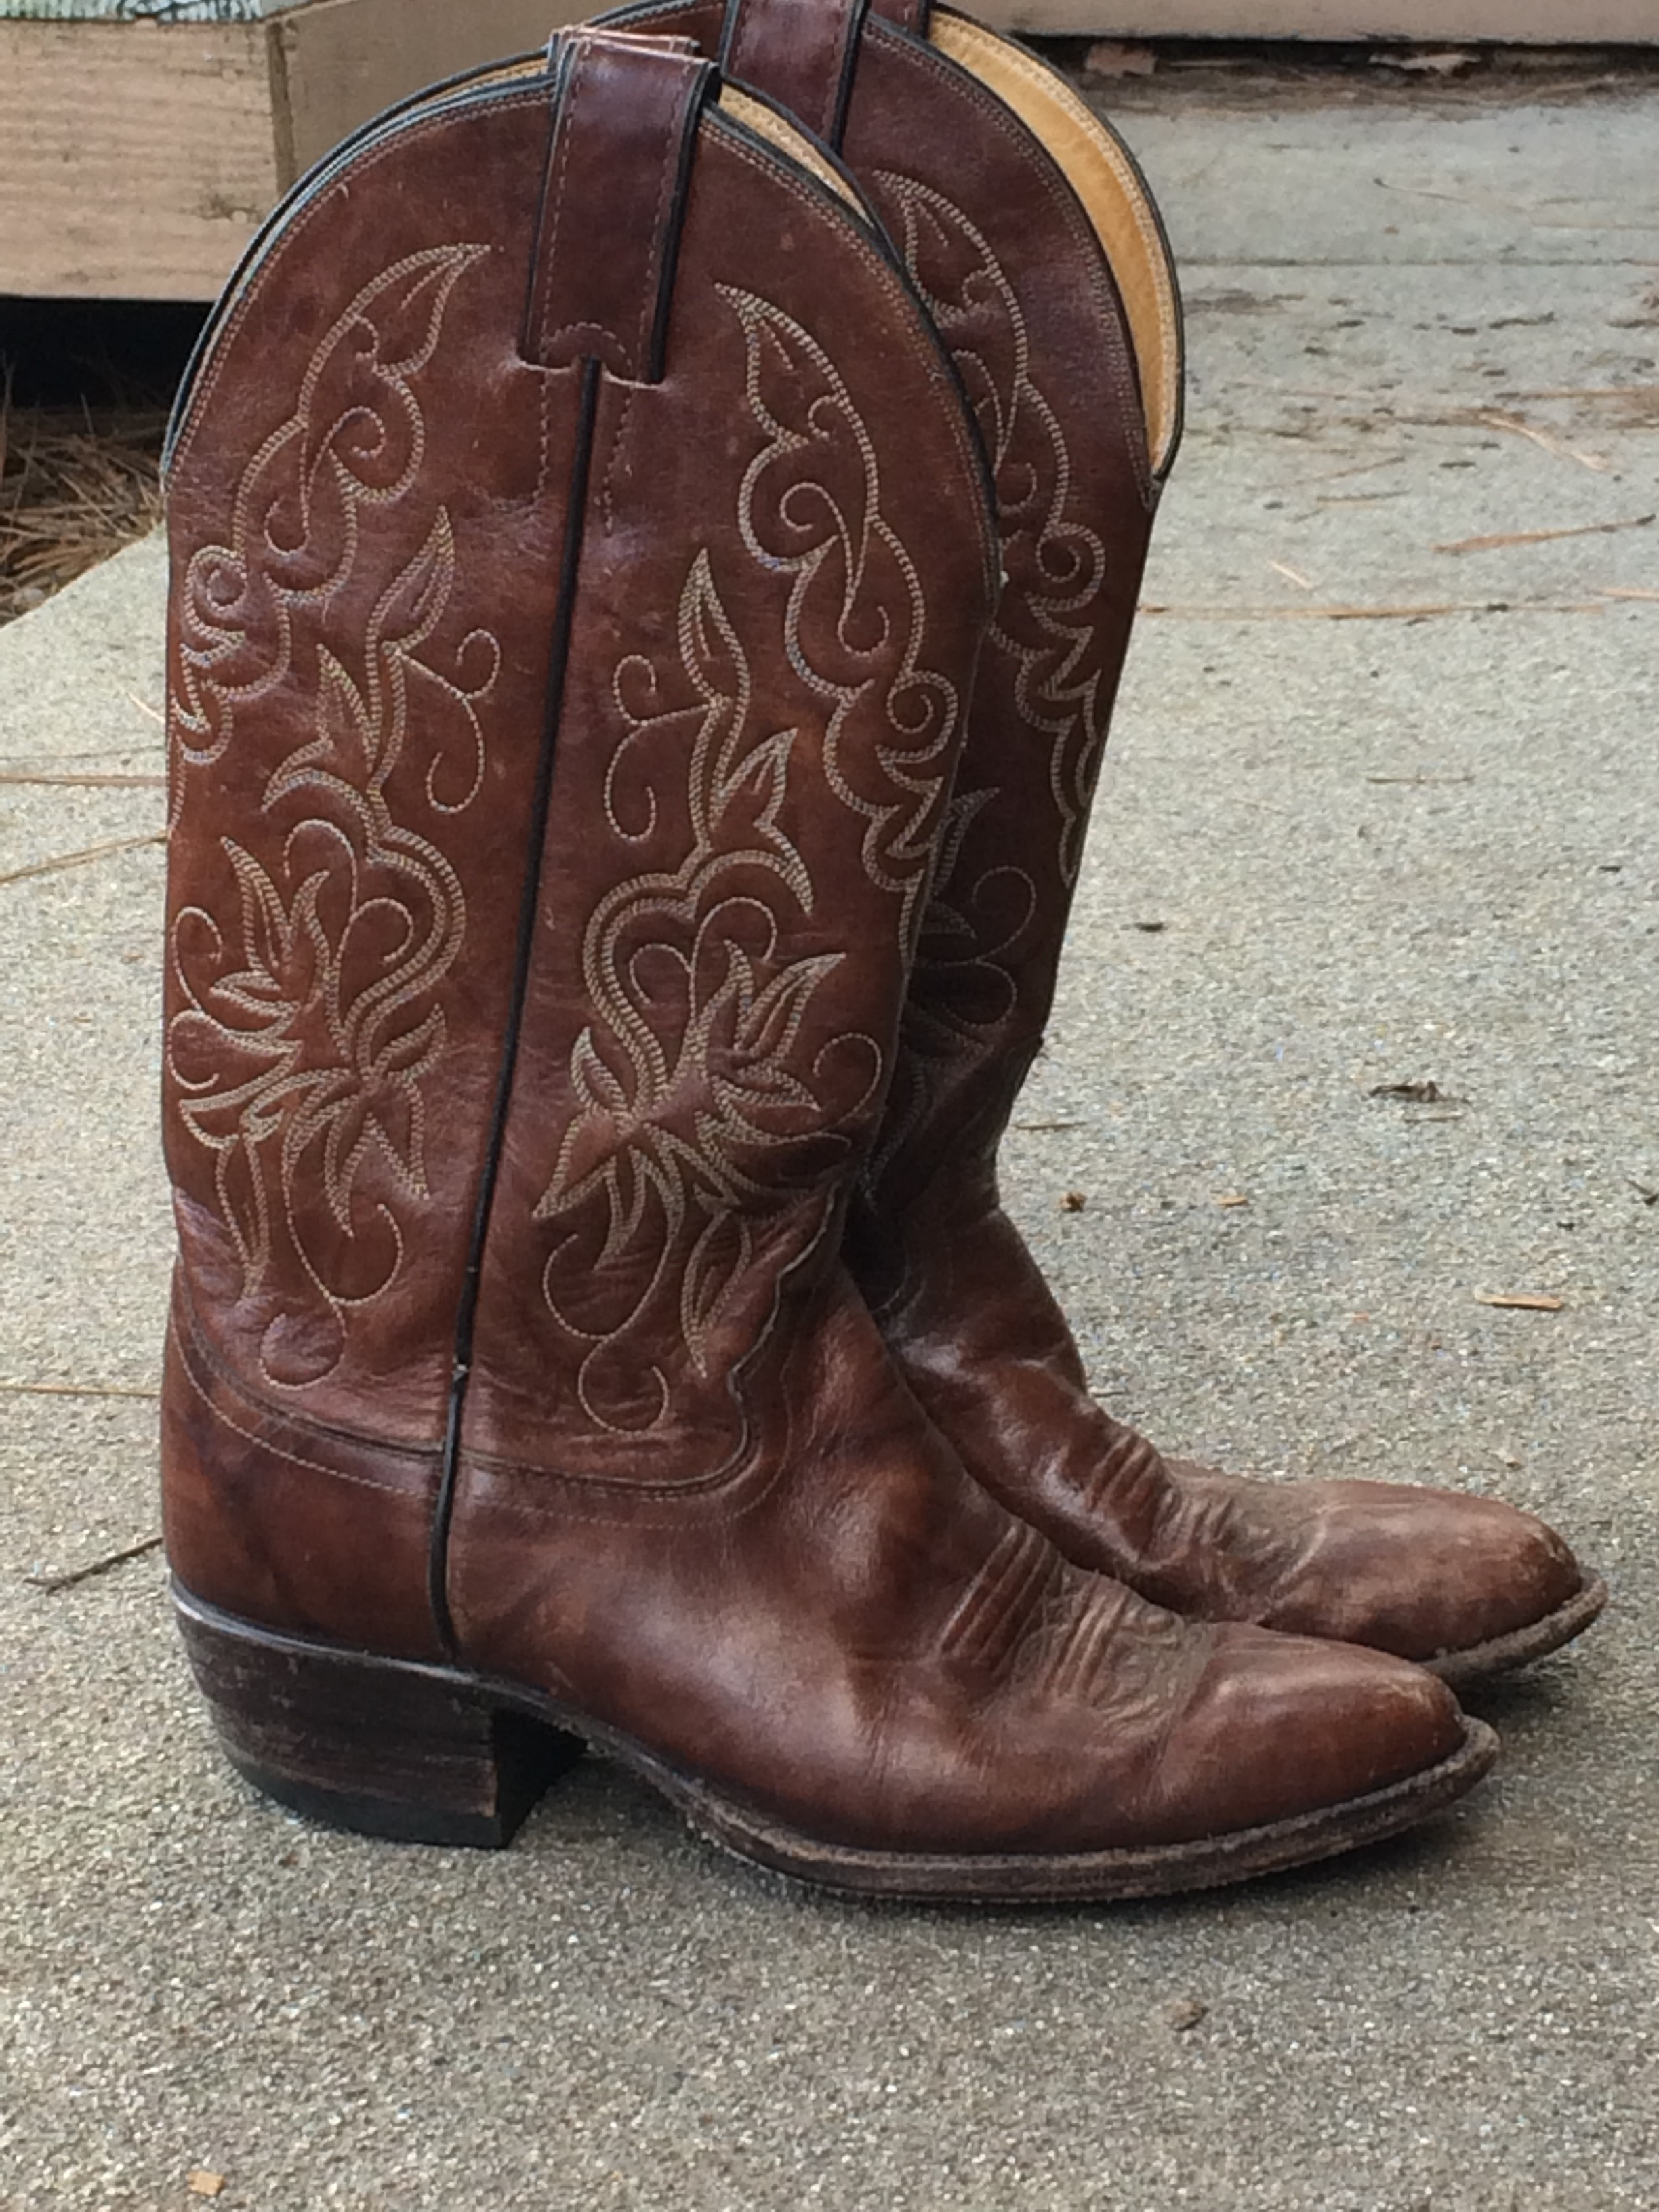 Guide to Buying Vintage Cowboy Boots - The Domestic Wildflower